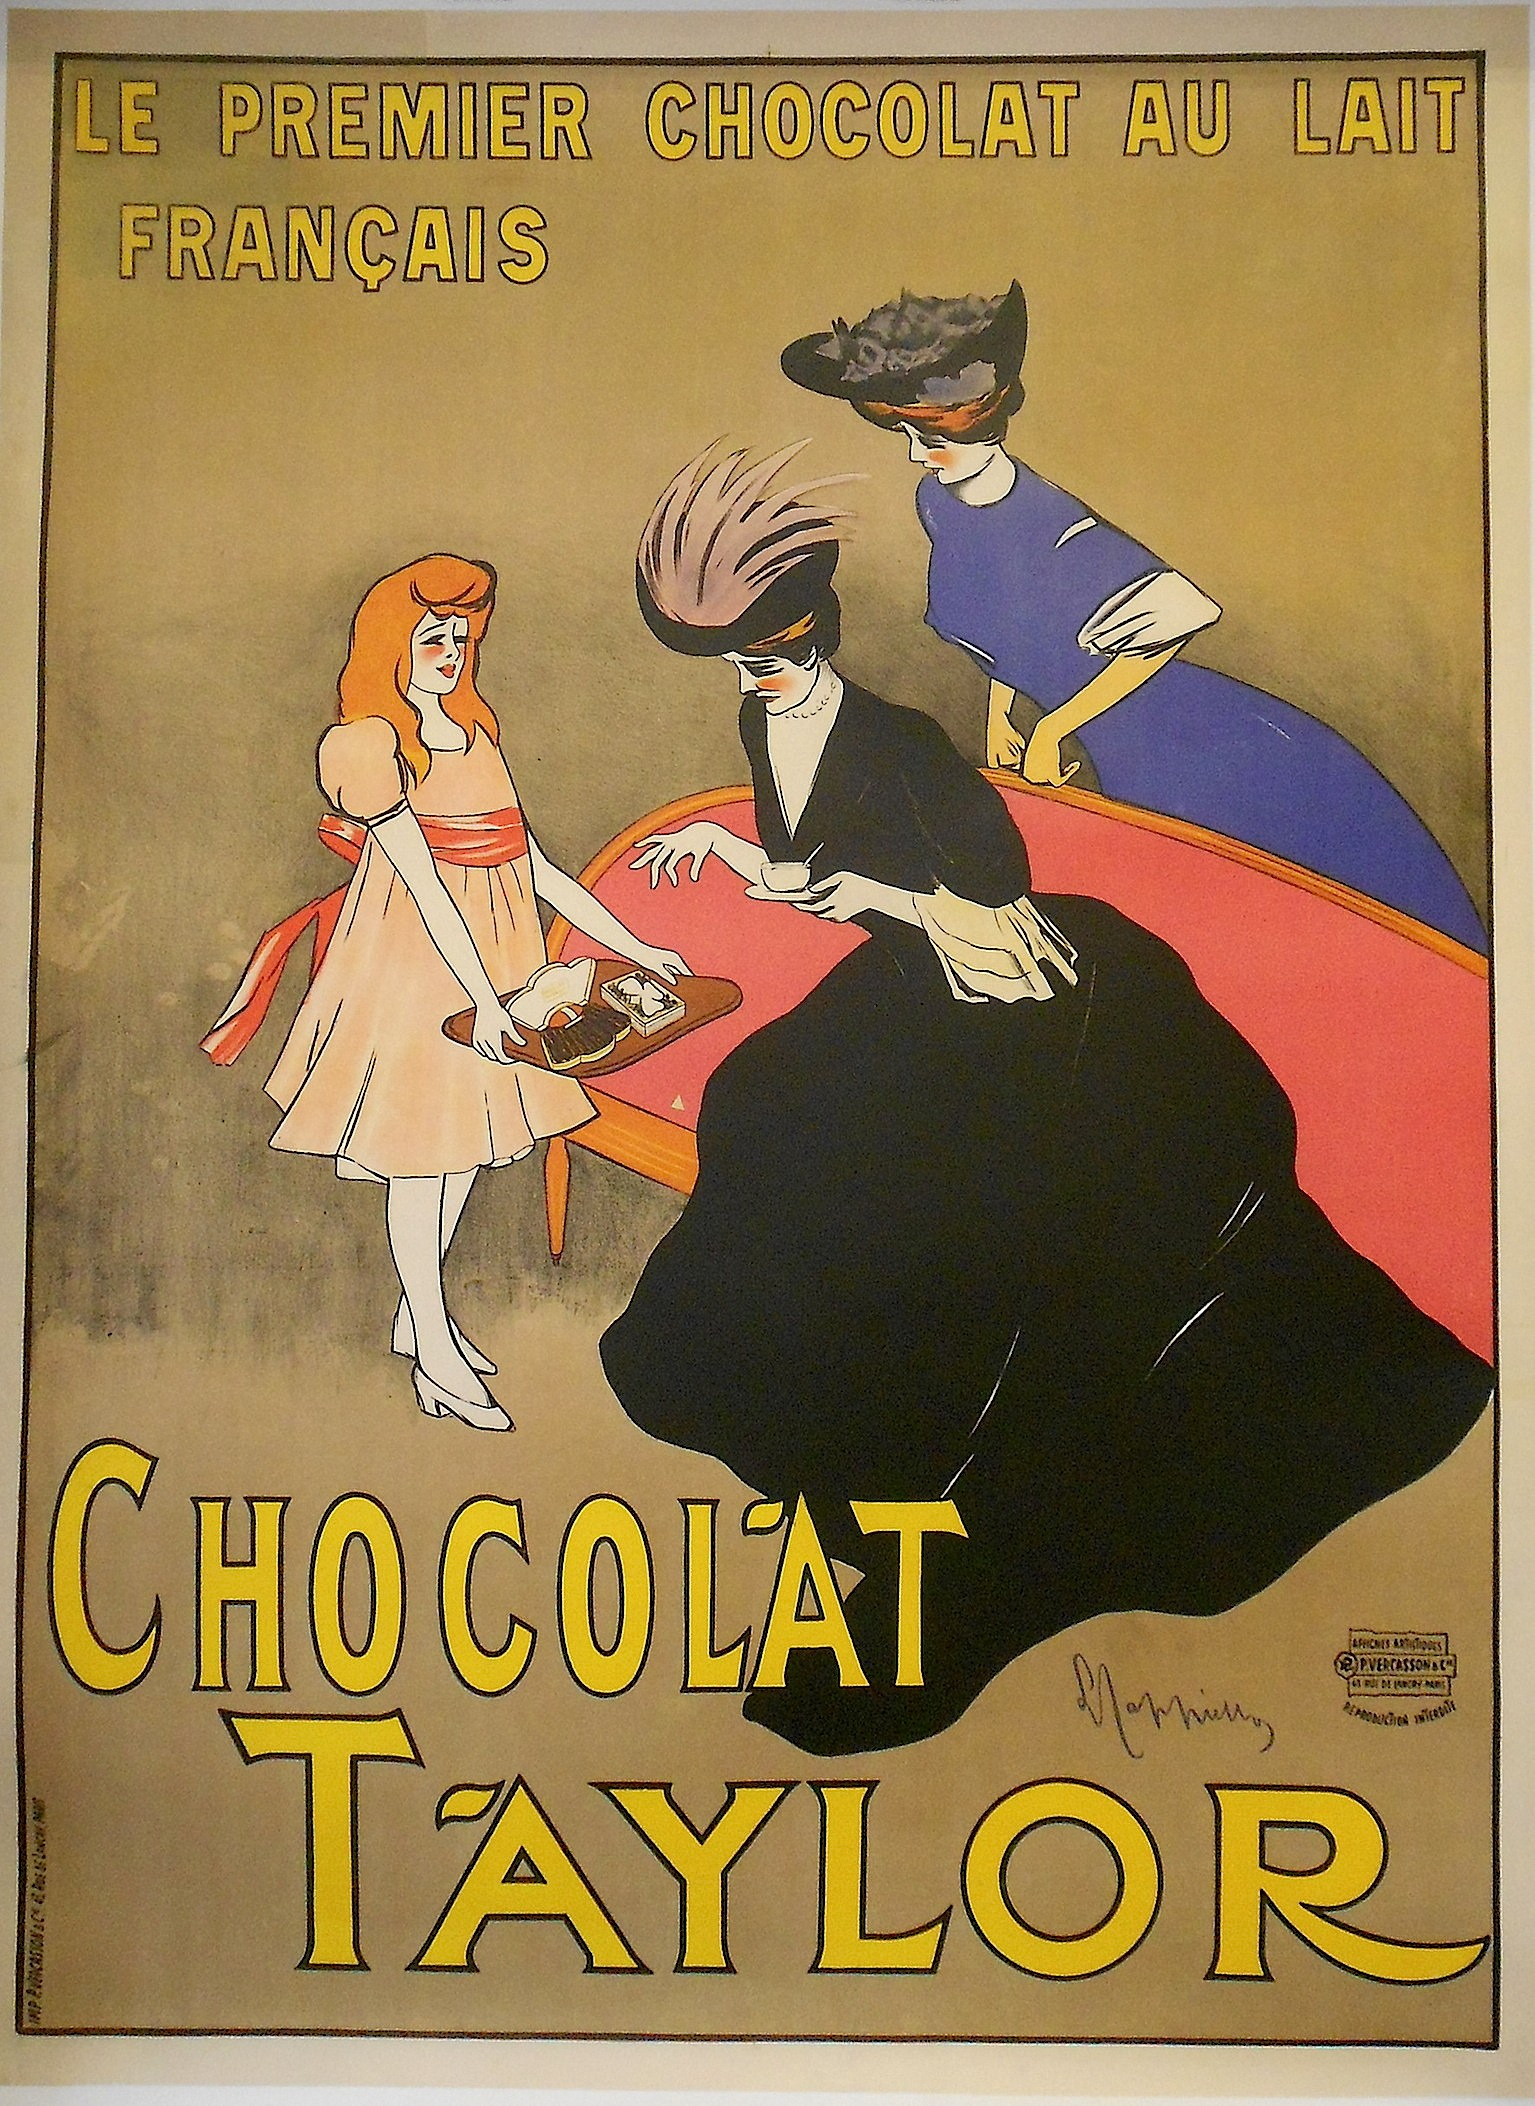 Turns out? french vintage chocolate advertisement congratulate